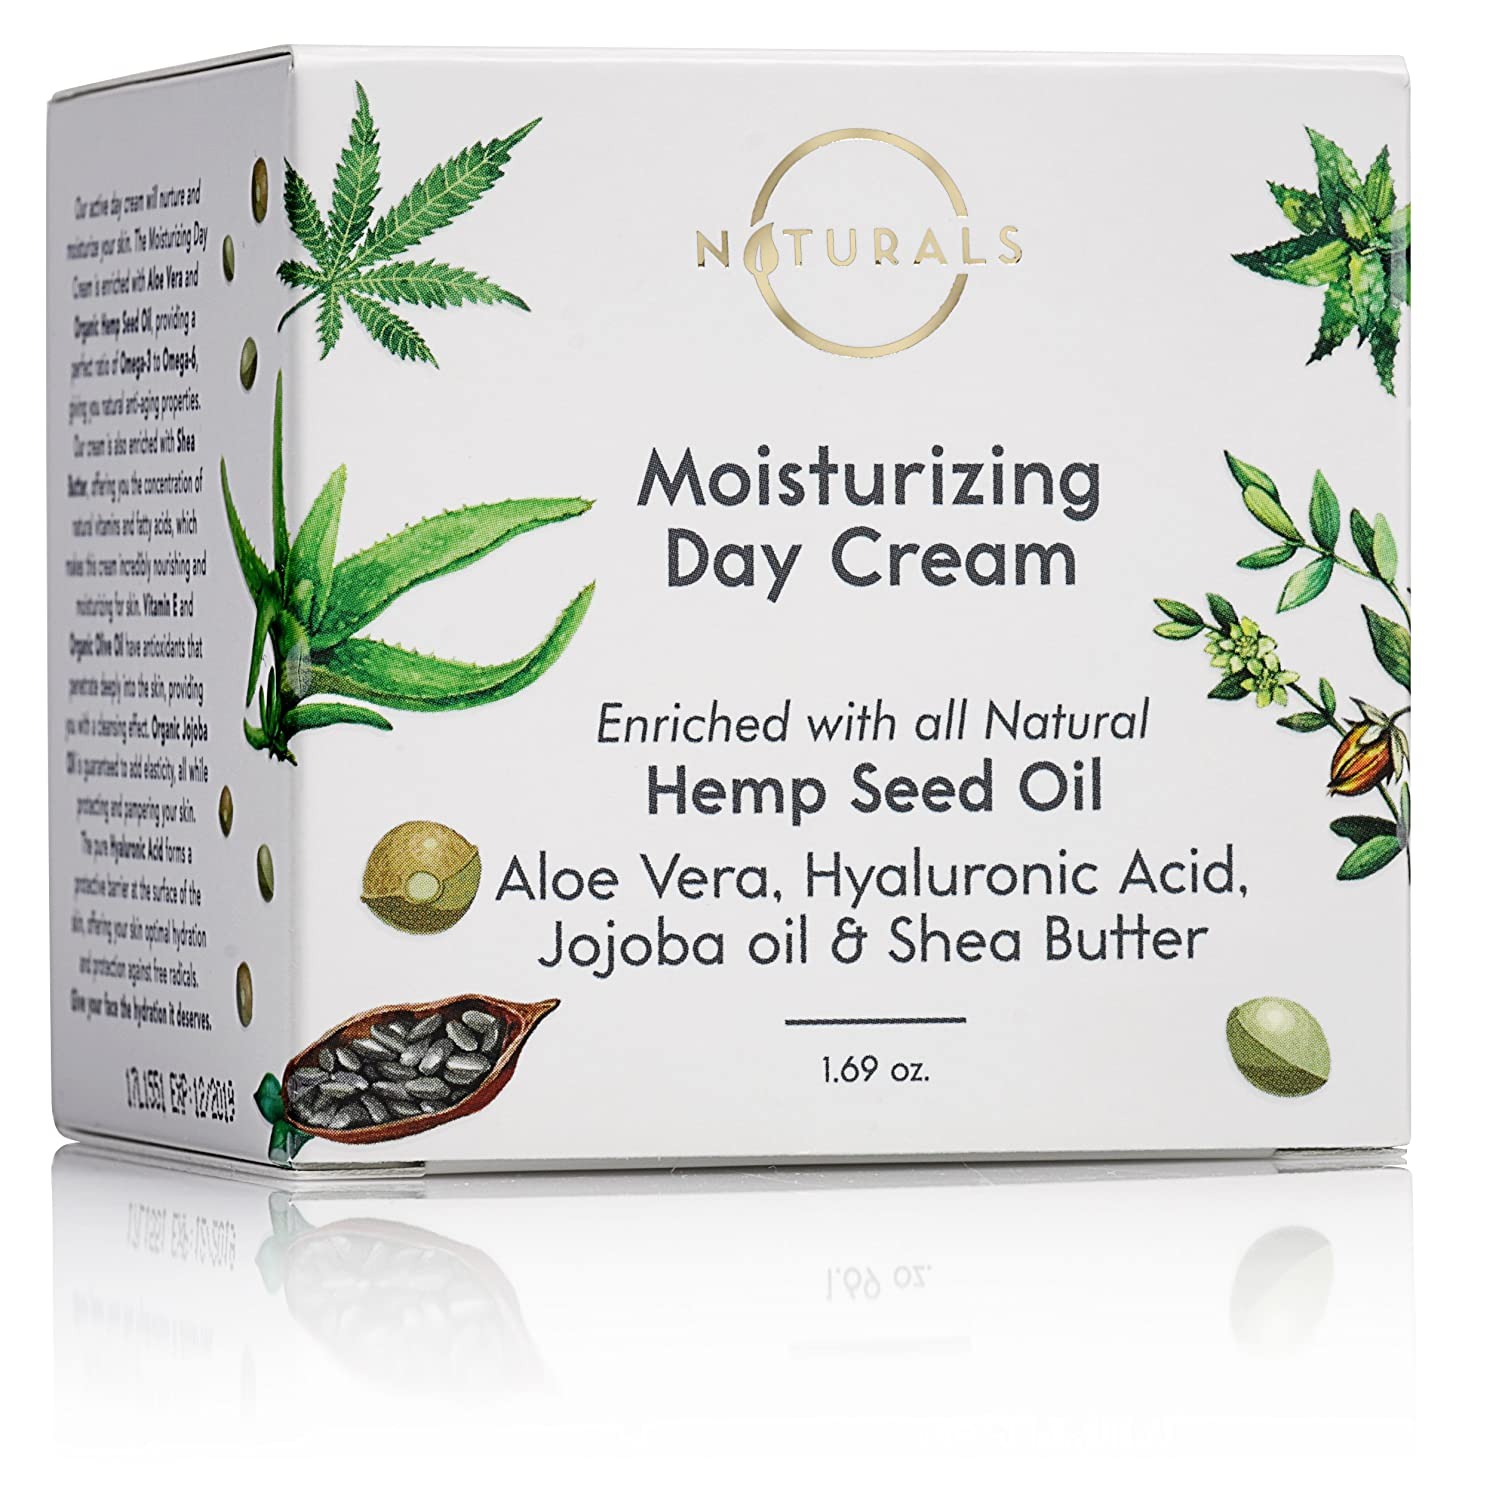 O Naturals Organic Hemp Seed Oil Anti-Aging Moisturizing Day Cream for Face & Neck. Reduces Wrinkles, Protects from Free Radicals & Hydrates Skin. w/Aloe Vera, Hyaluronic Acid & Jojoba Oil 1.69 oz.